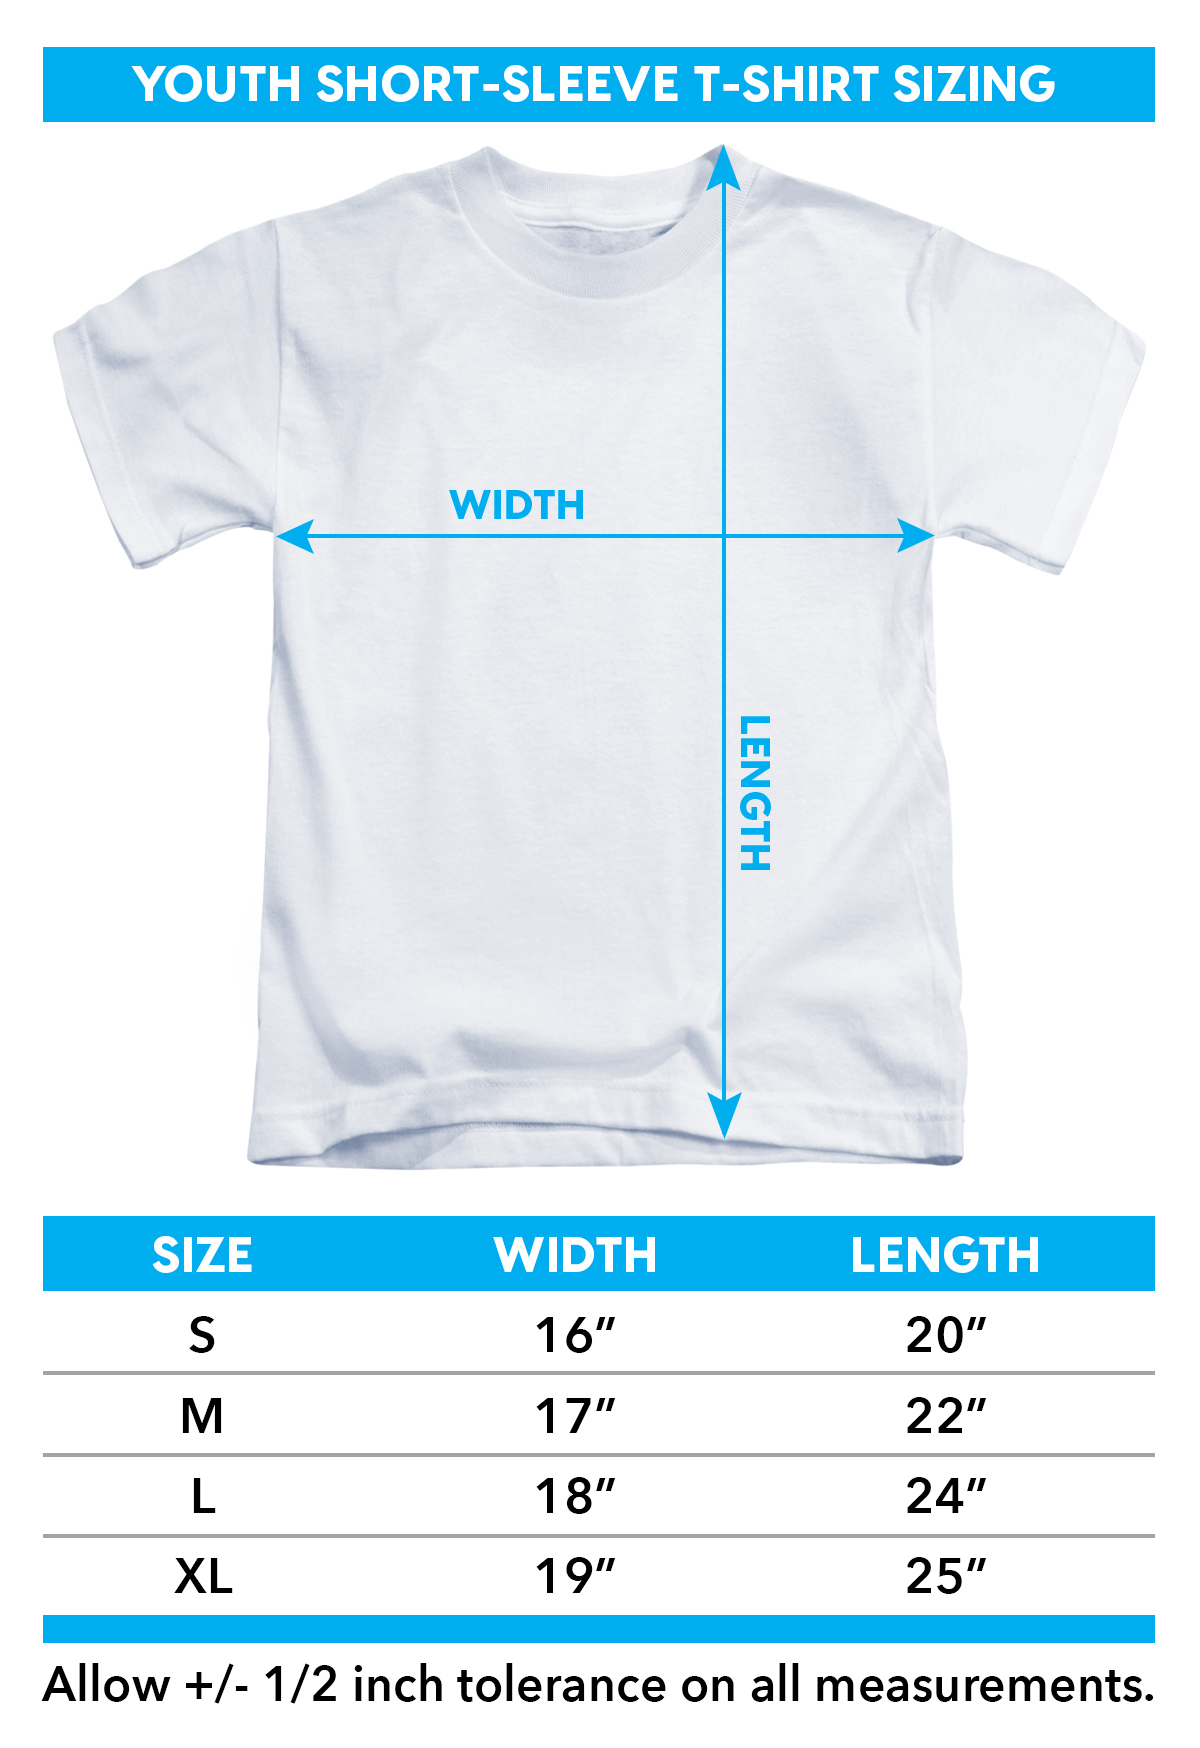 Sizing chart for Labyrinth Youth T-Shirt - I Have a Gift TRV-LAB102-YT